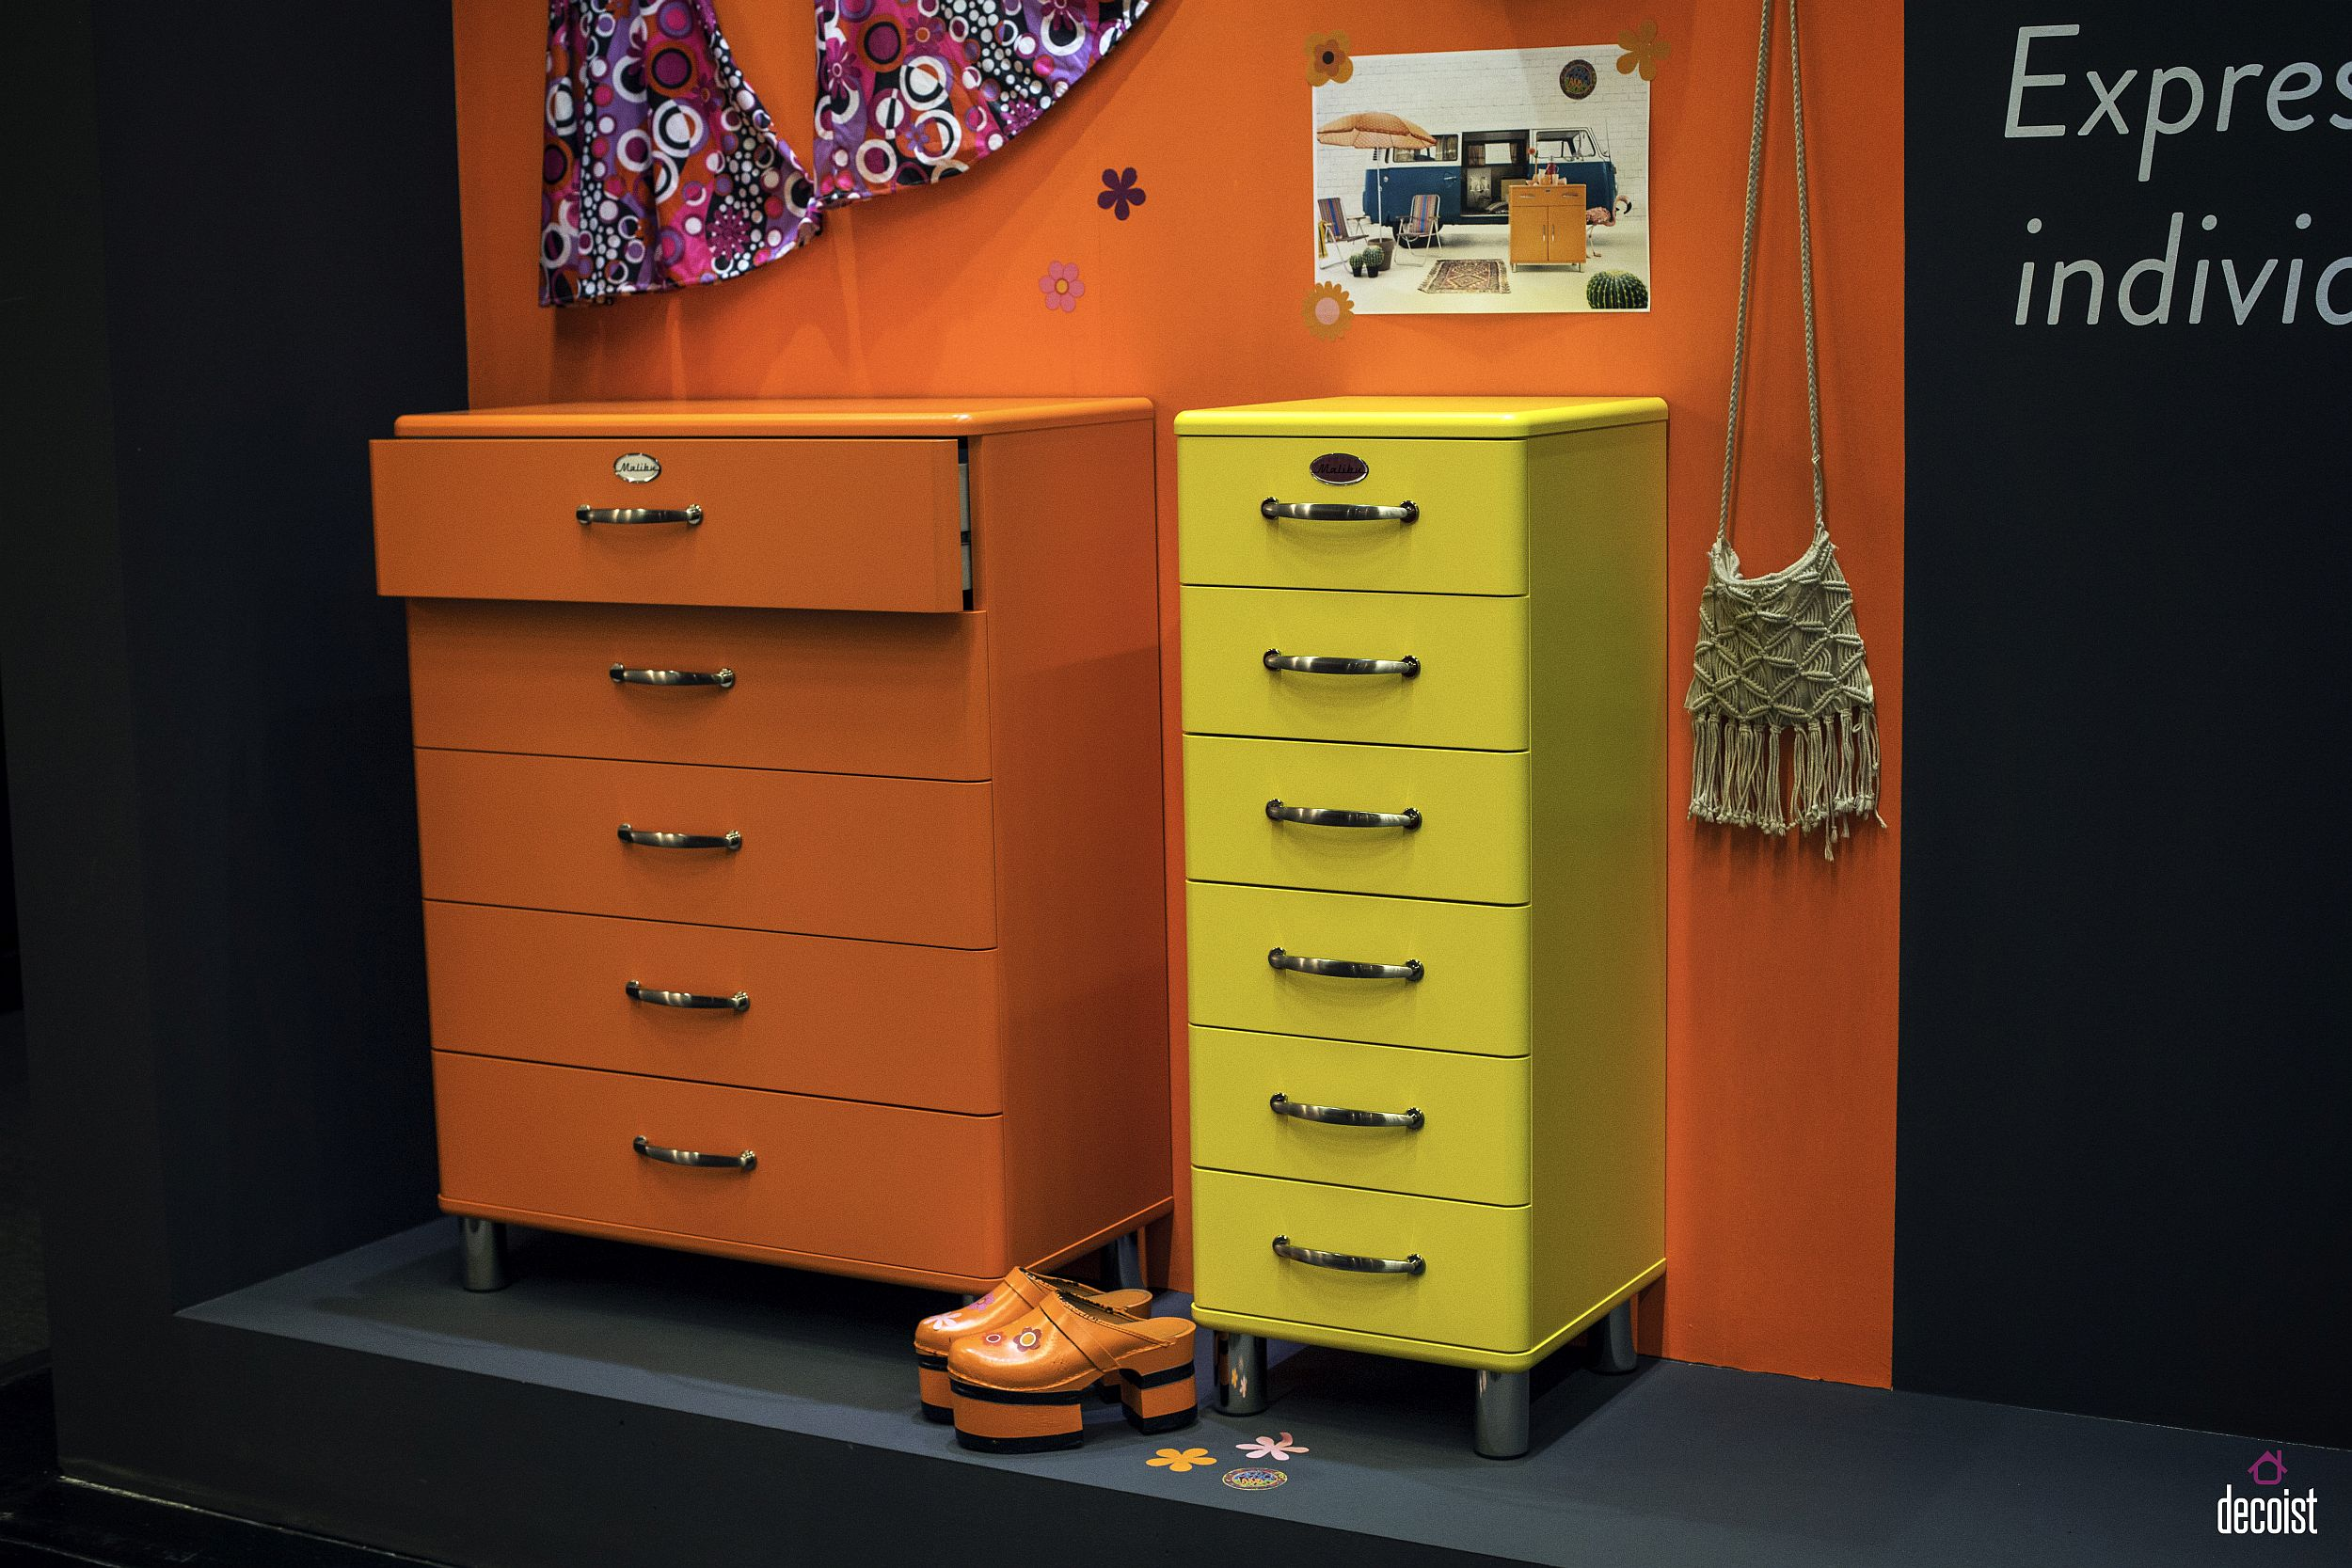 Orange and yellow Malibu storage units and drawers for the trendy teen room